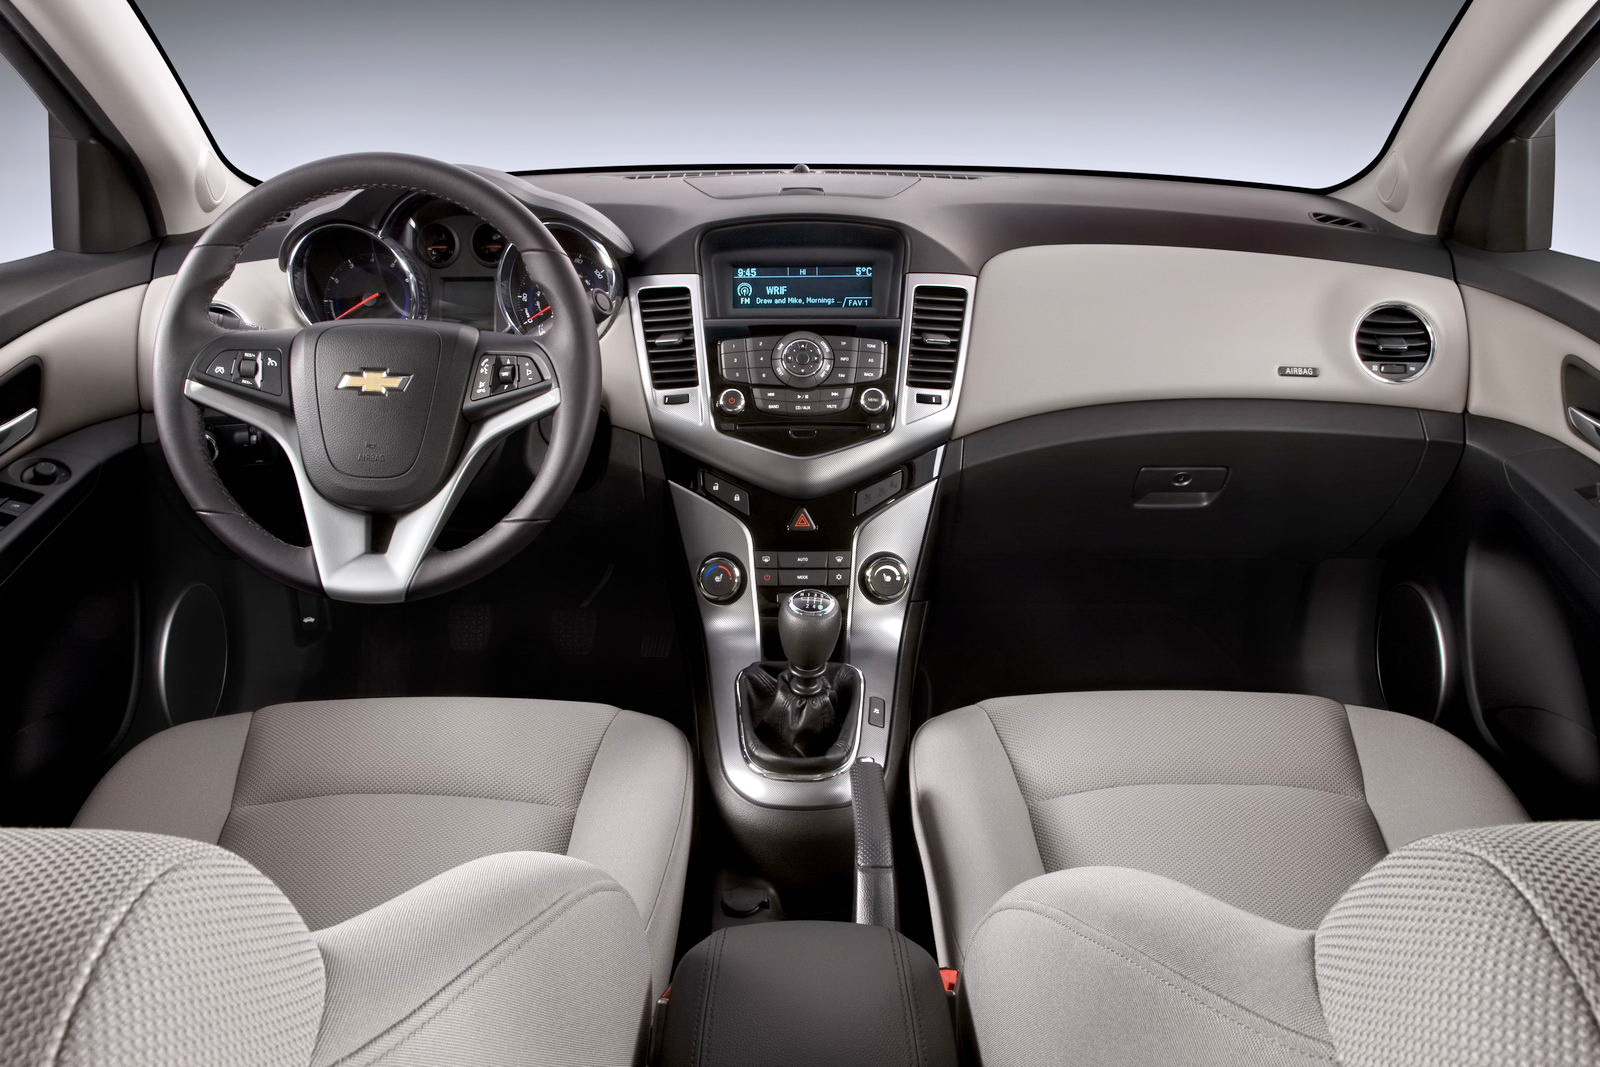 Chevrolet Cruze Planning To Take Over The World #5